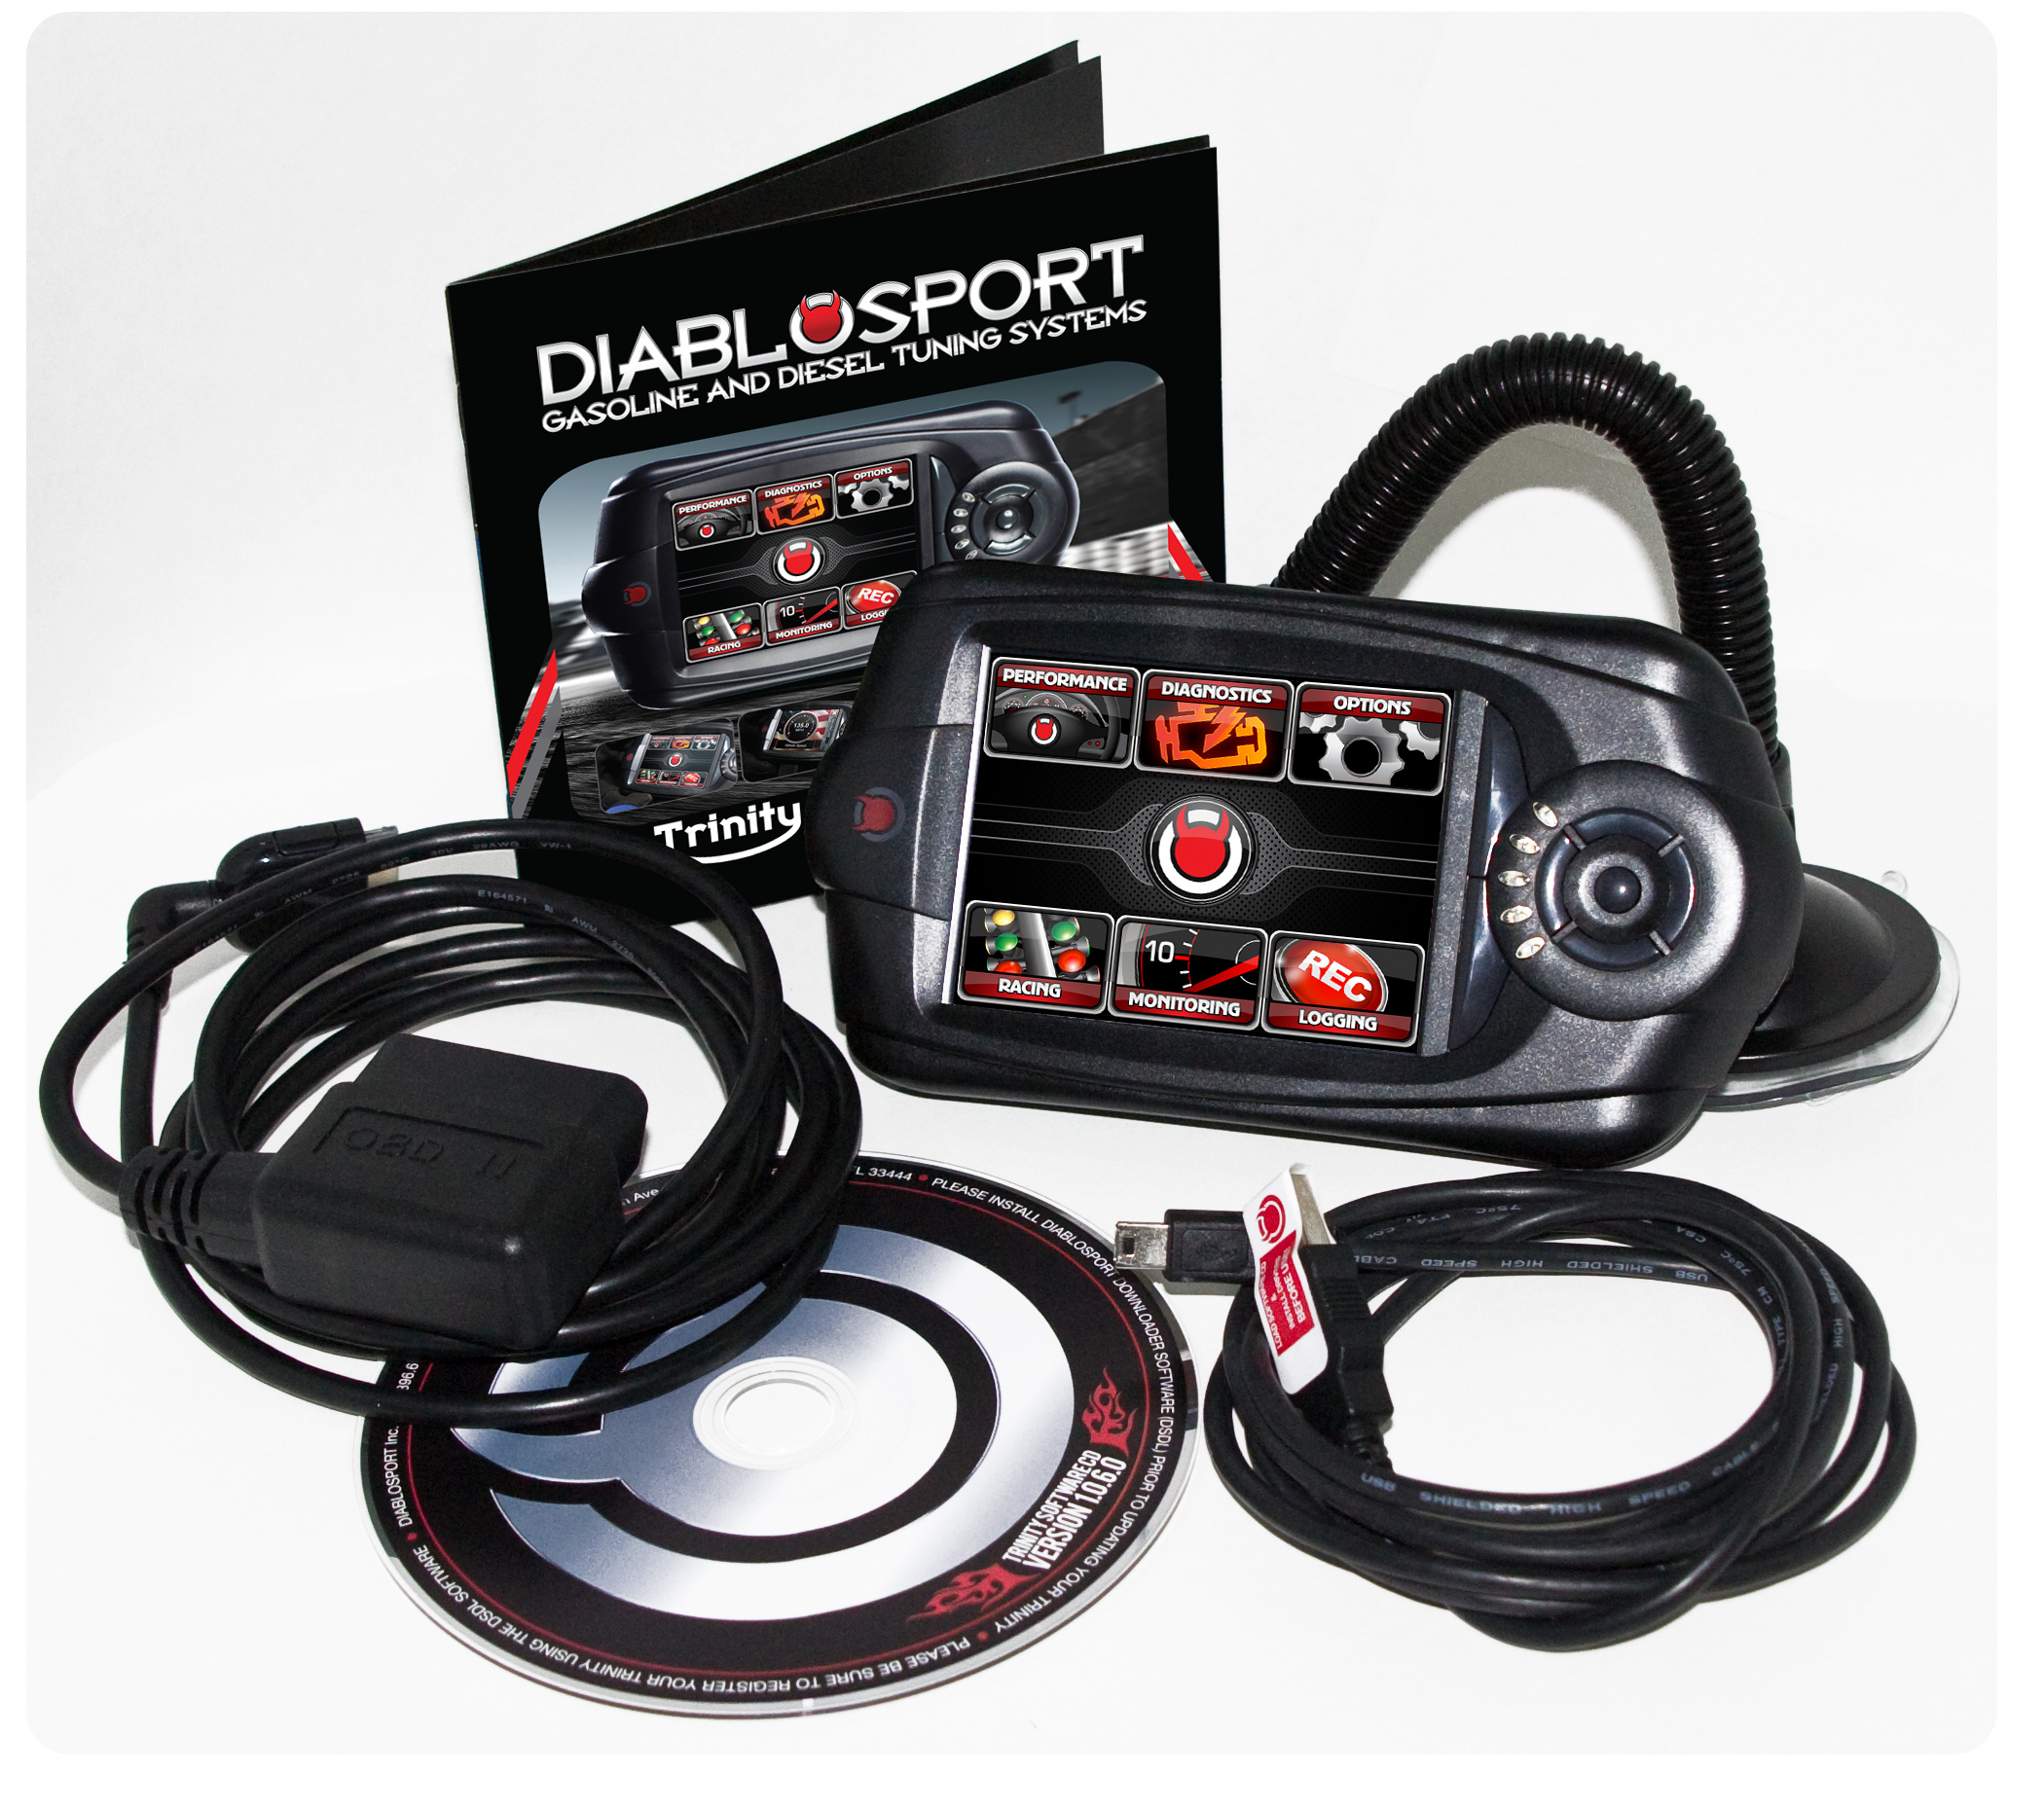 Dodge Ram 2003-2010 1500 Off-Road 5.7l Hemi Diablosport T1000 Trinity Performance Tuner